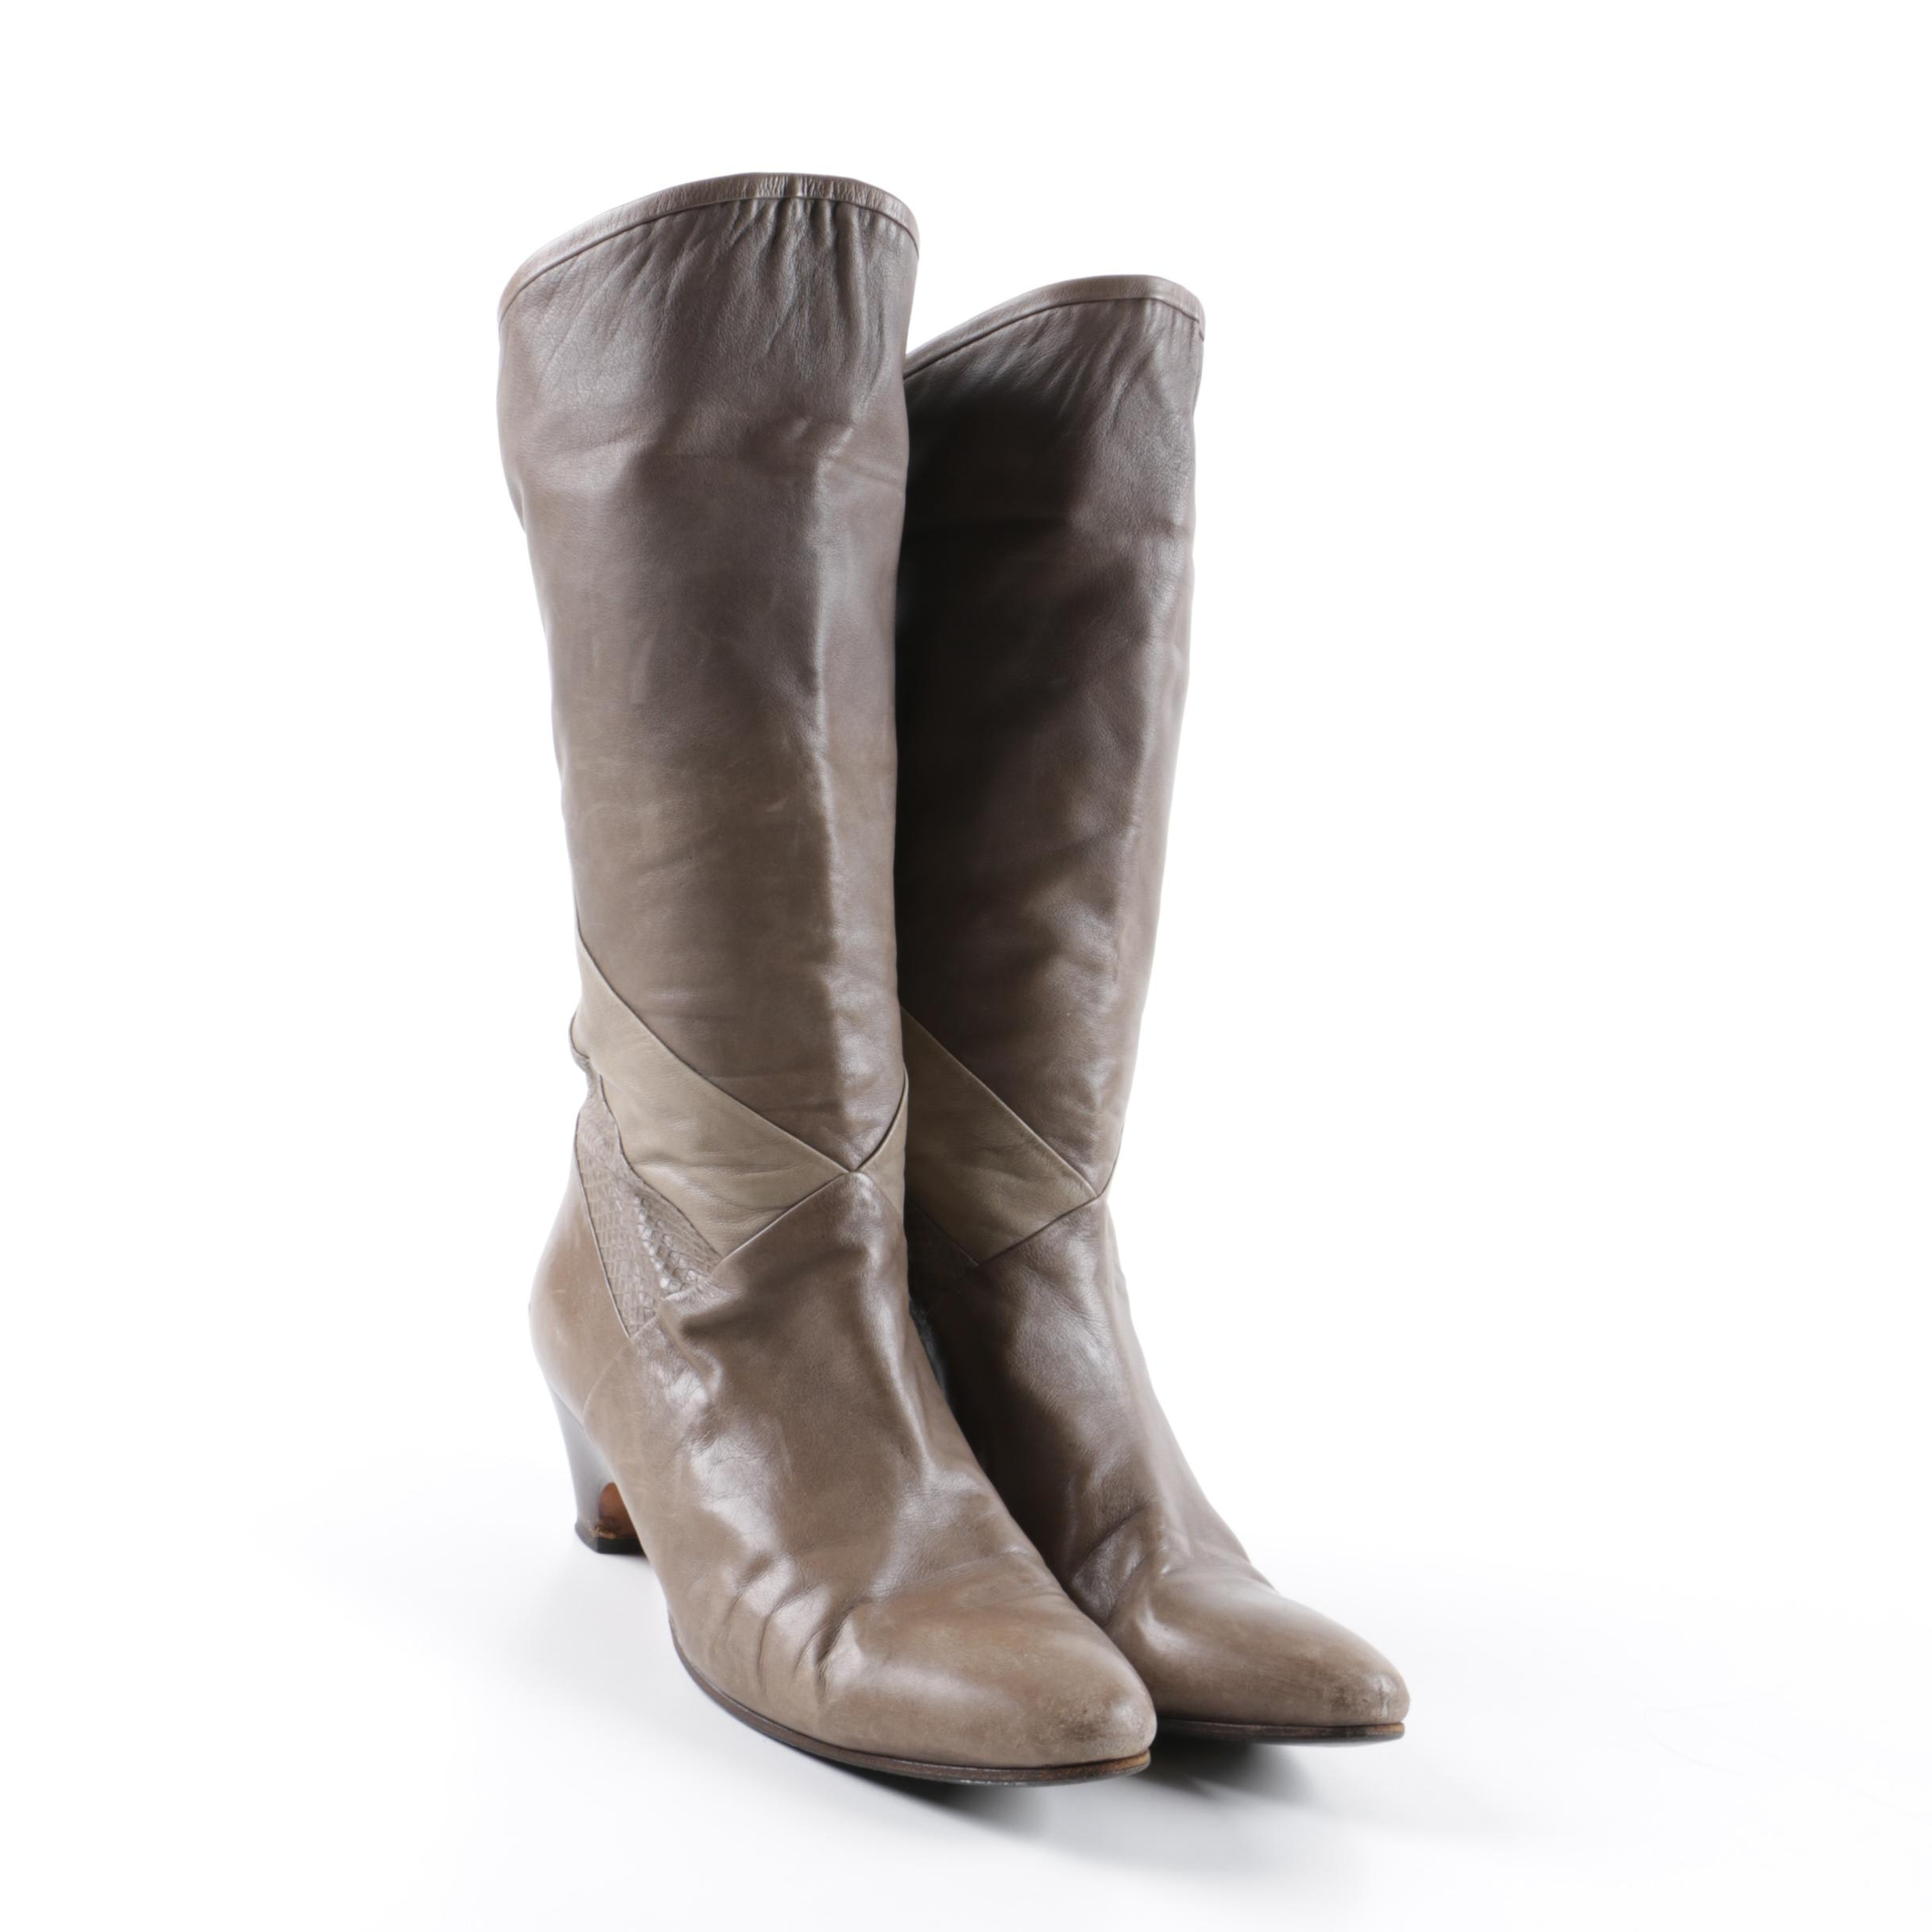 Women's Vintage Italian Made Embossed Leather Boots